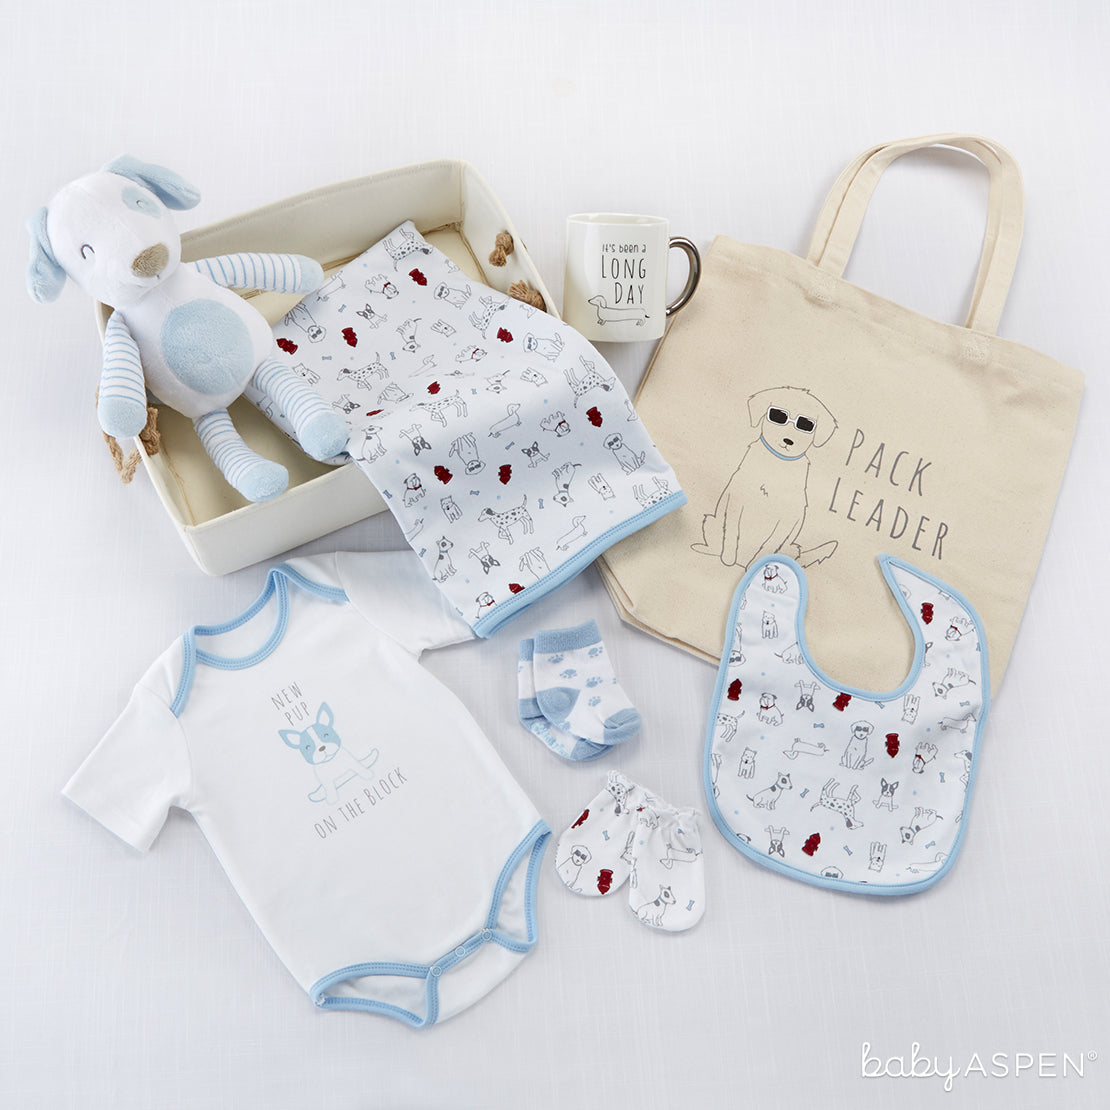 New Pup 9-Piece Baby Gift Basket   6 Gifts for a Puppy Themed Baby Shower   Baby Aspen